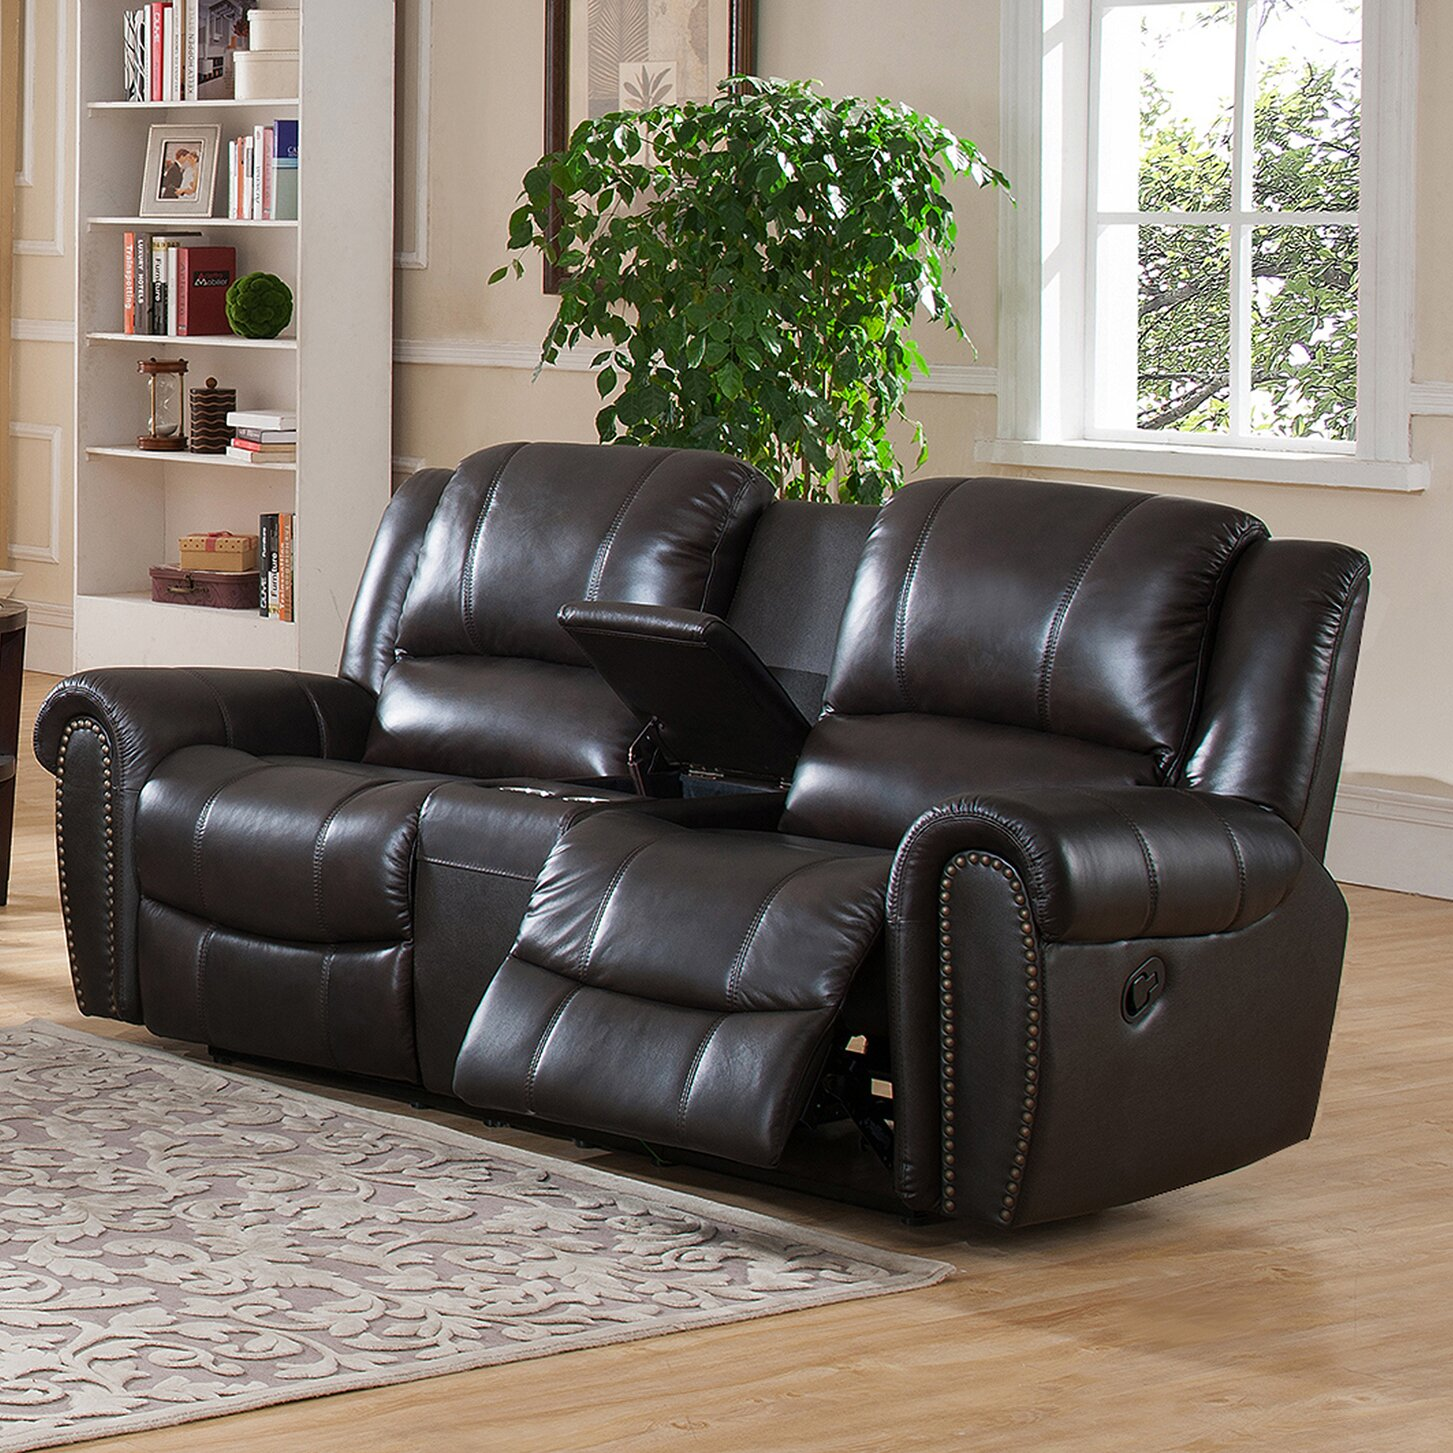 Amax Charlotte Leather Recliner Sofa And Loveseat Set